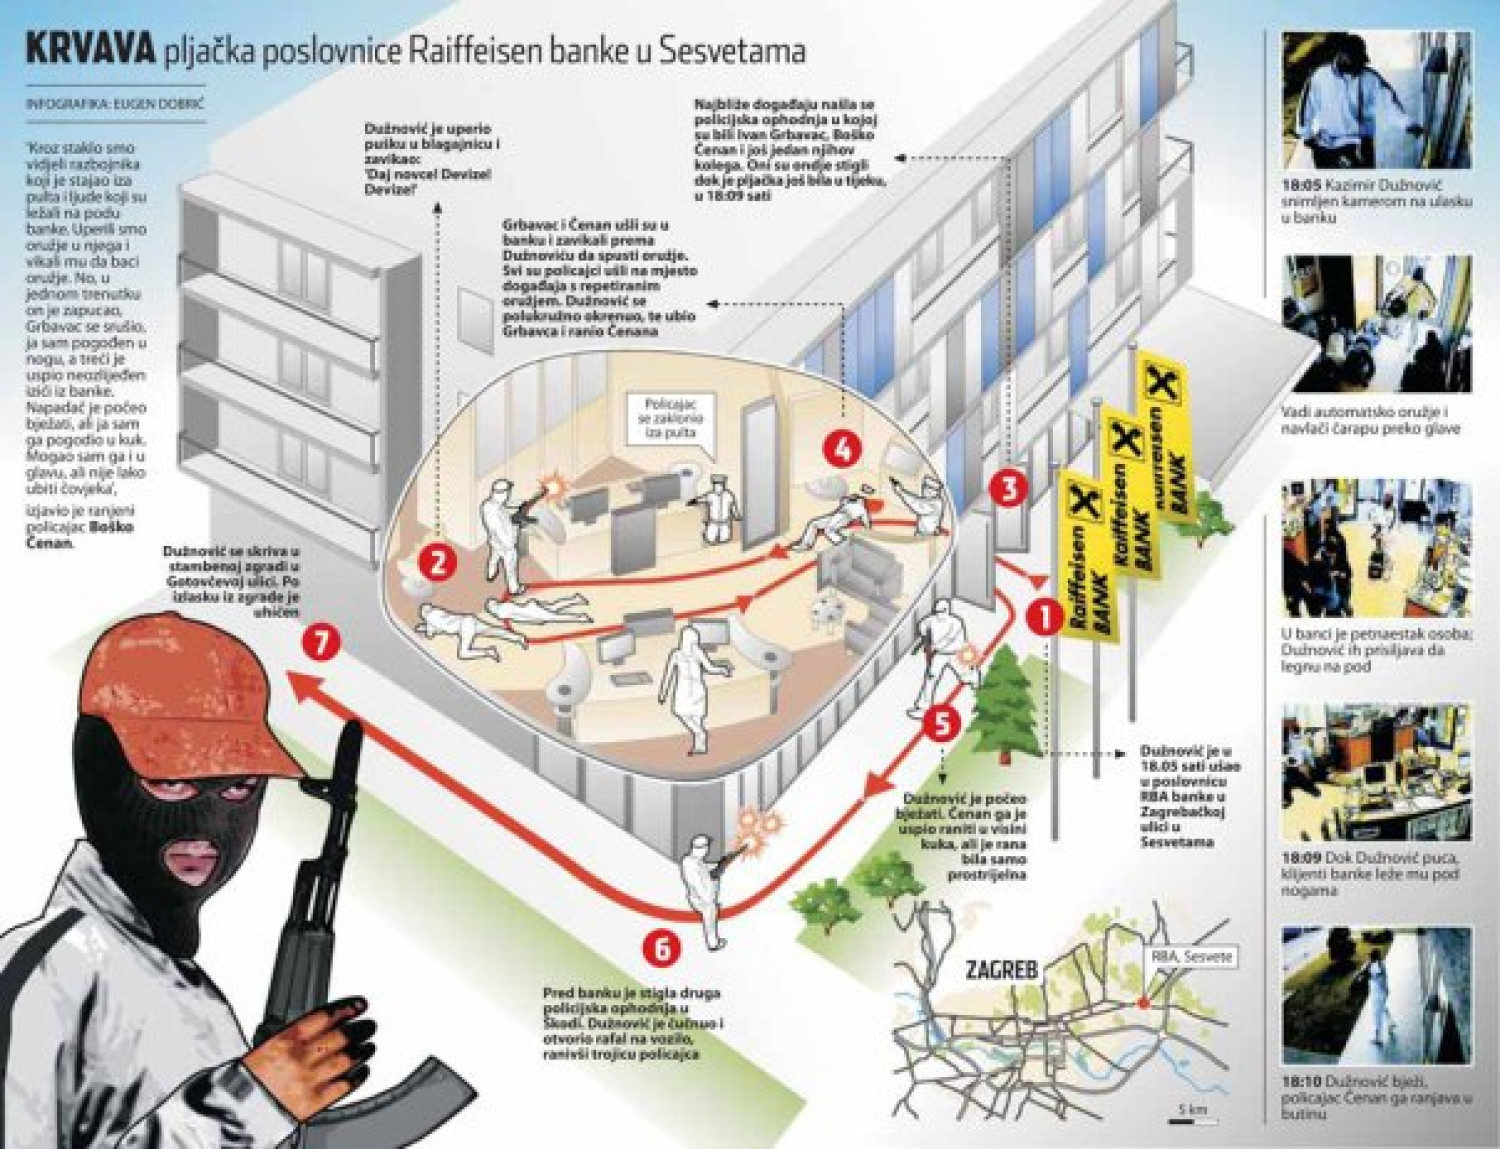 Bloody bank robbery Infographic